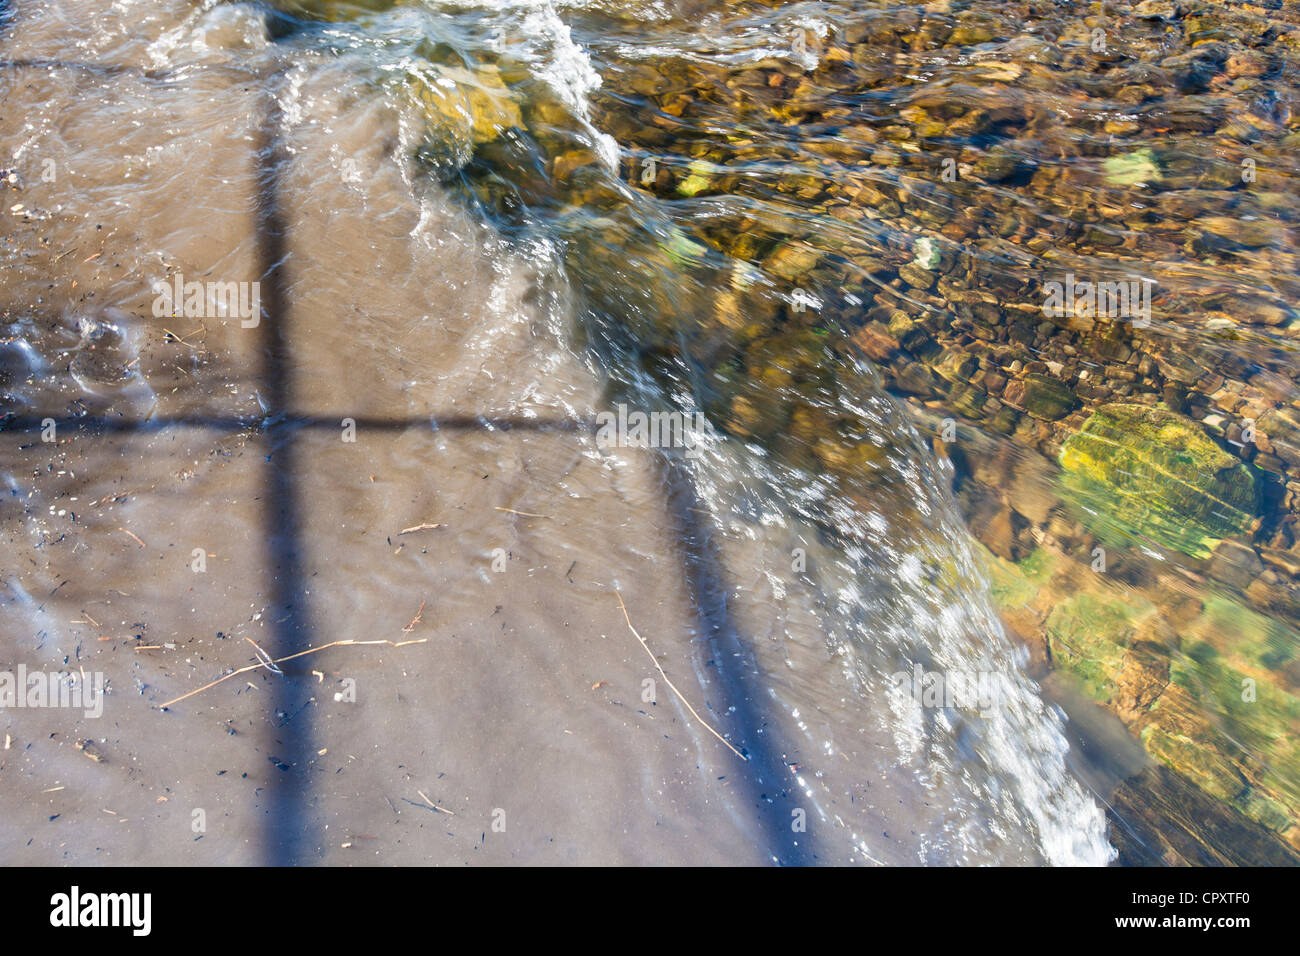 Raw sewage mixing with clean clear water in the river Kent in Kendal, Cumbria, UK. - Stock Image